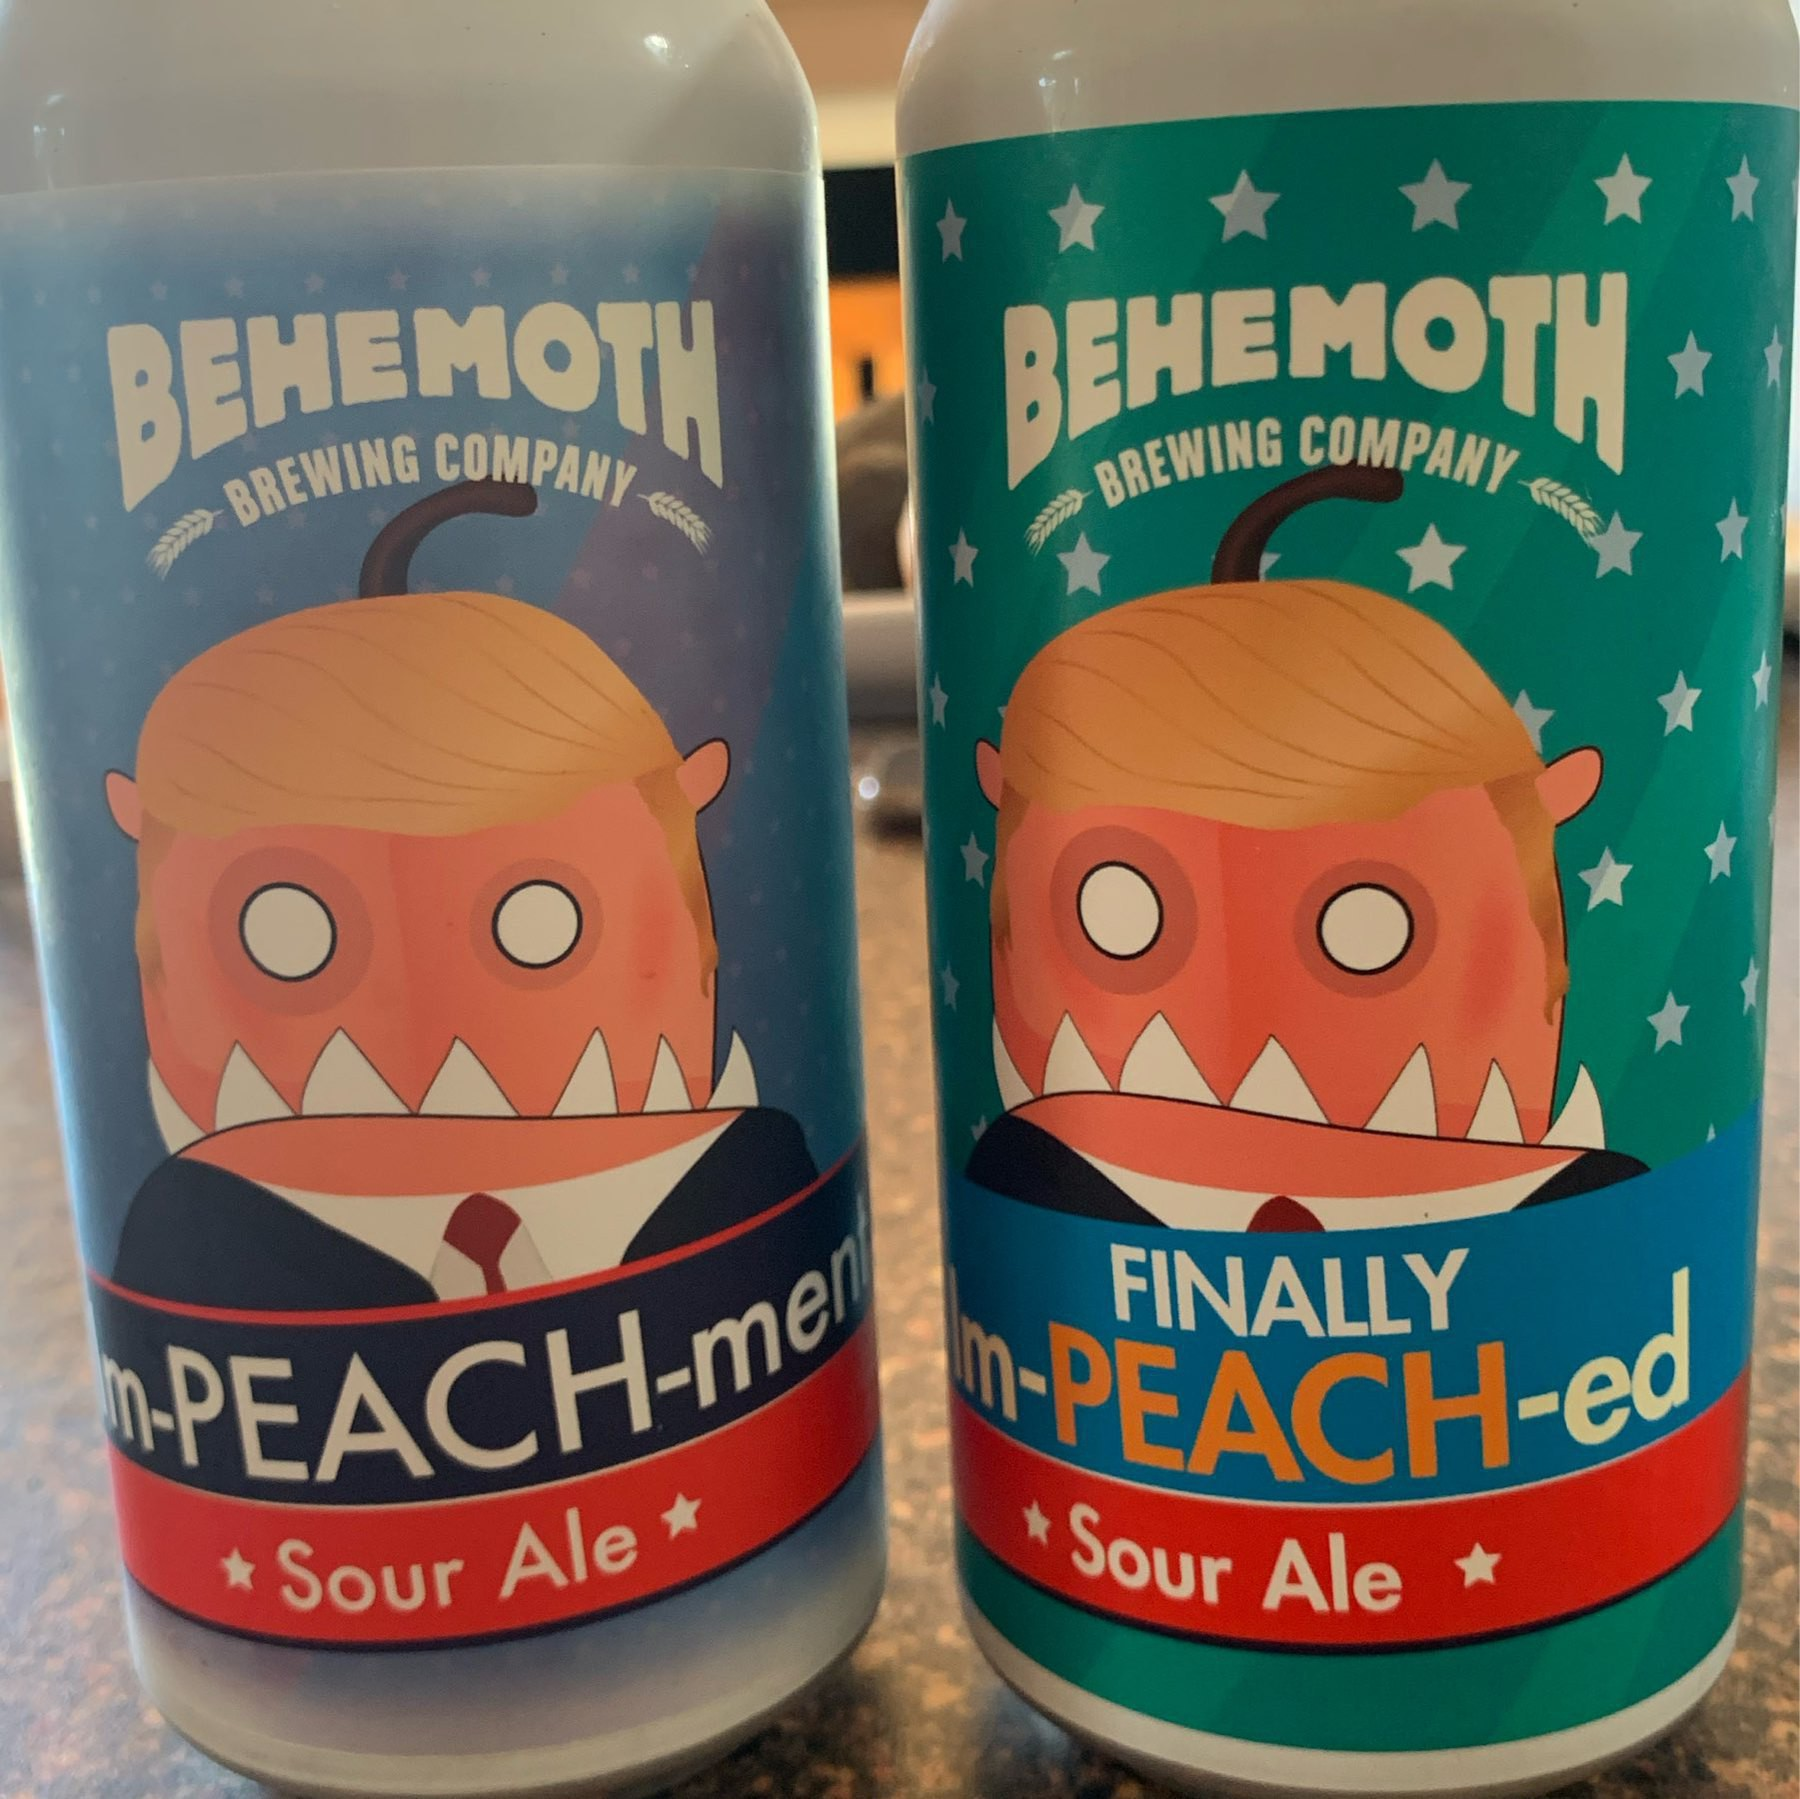 Cans of Im-peach-ment and Finally Im-peach-ed sour ales by Behemoth brewing.